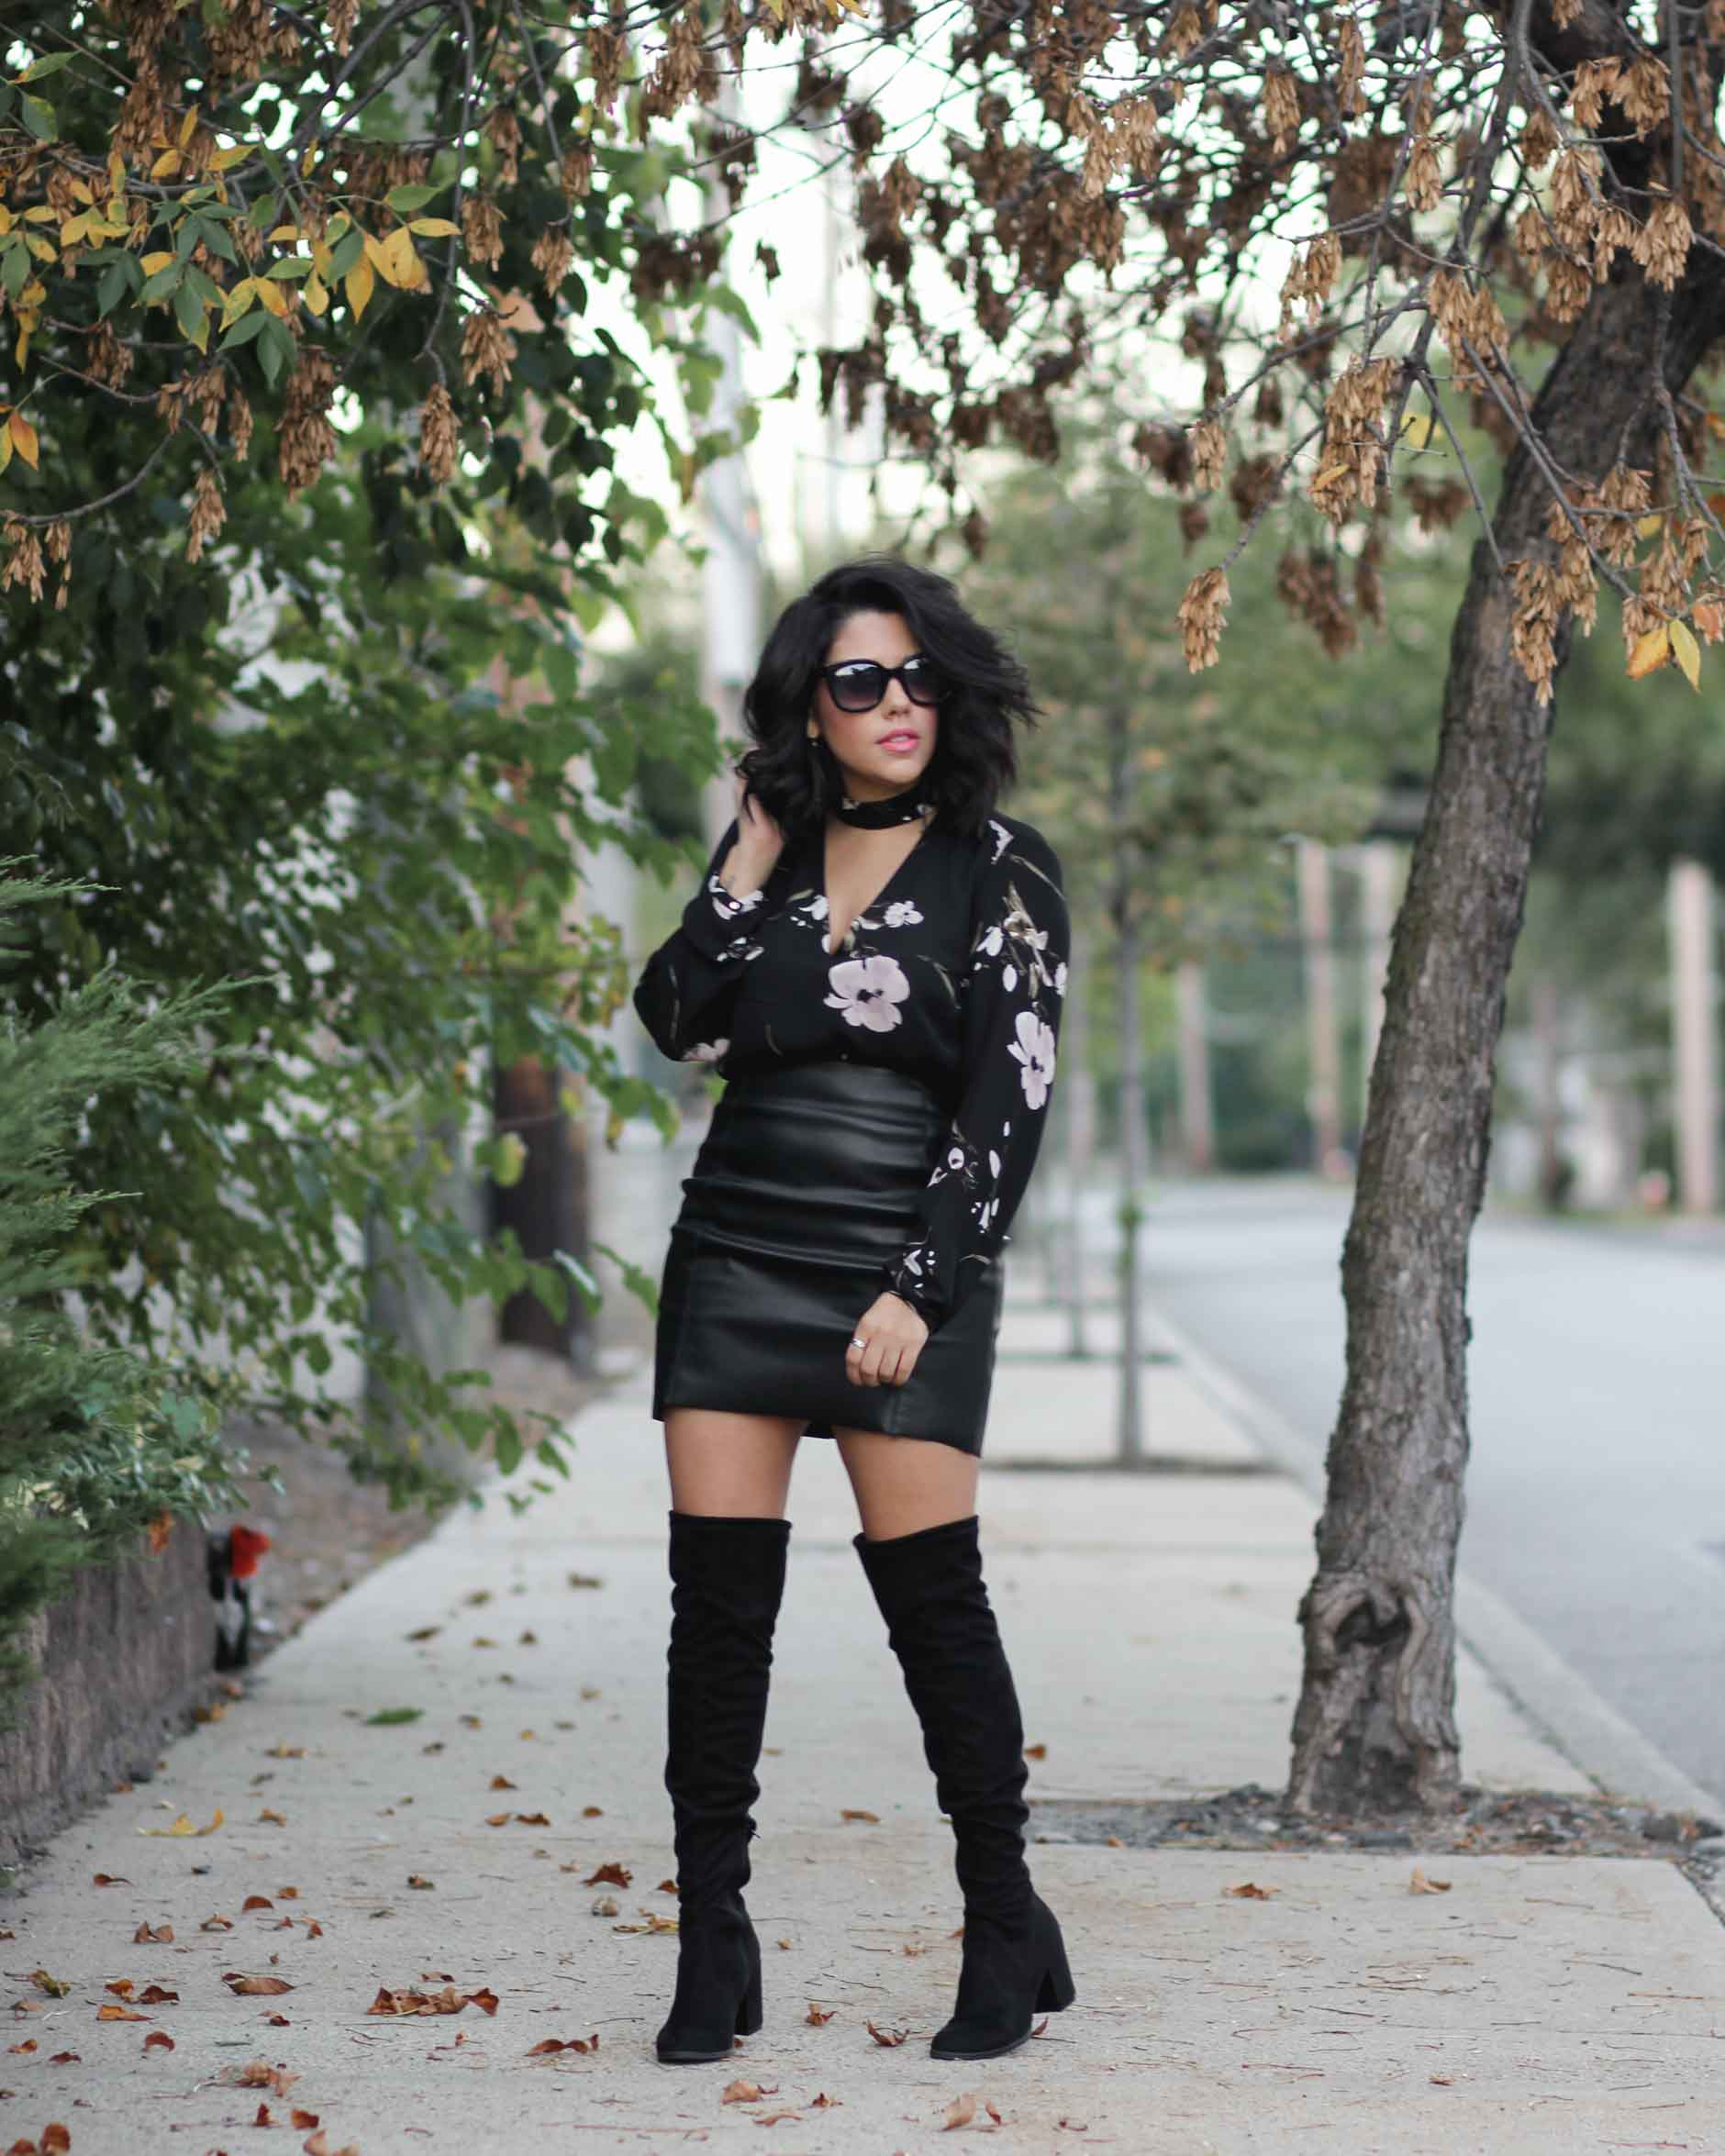 lifestyle blogger naty michele wearing OTK boots and a leather skirt